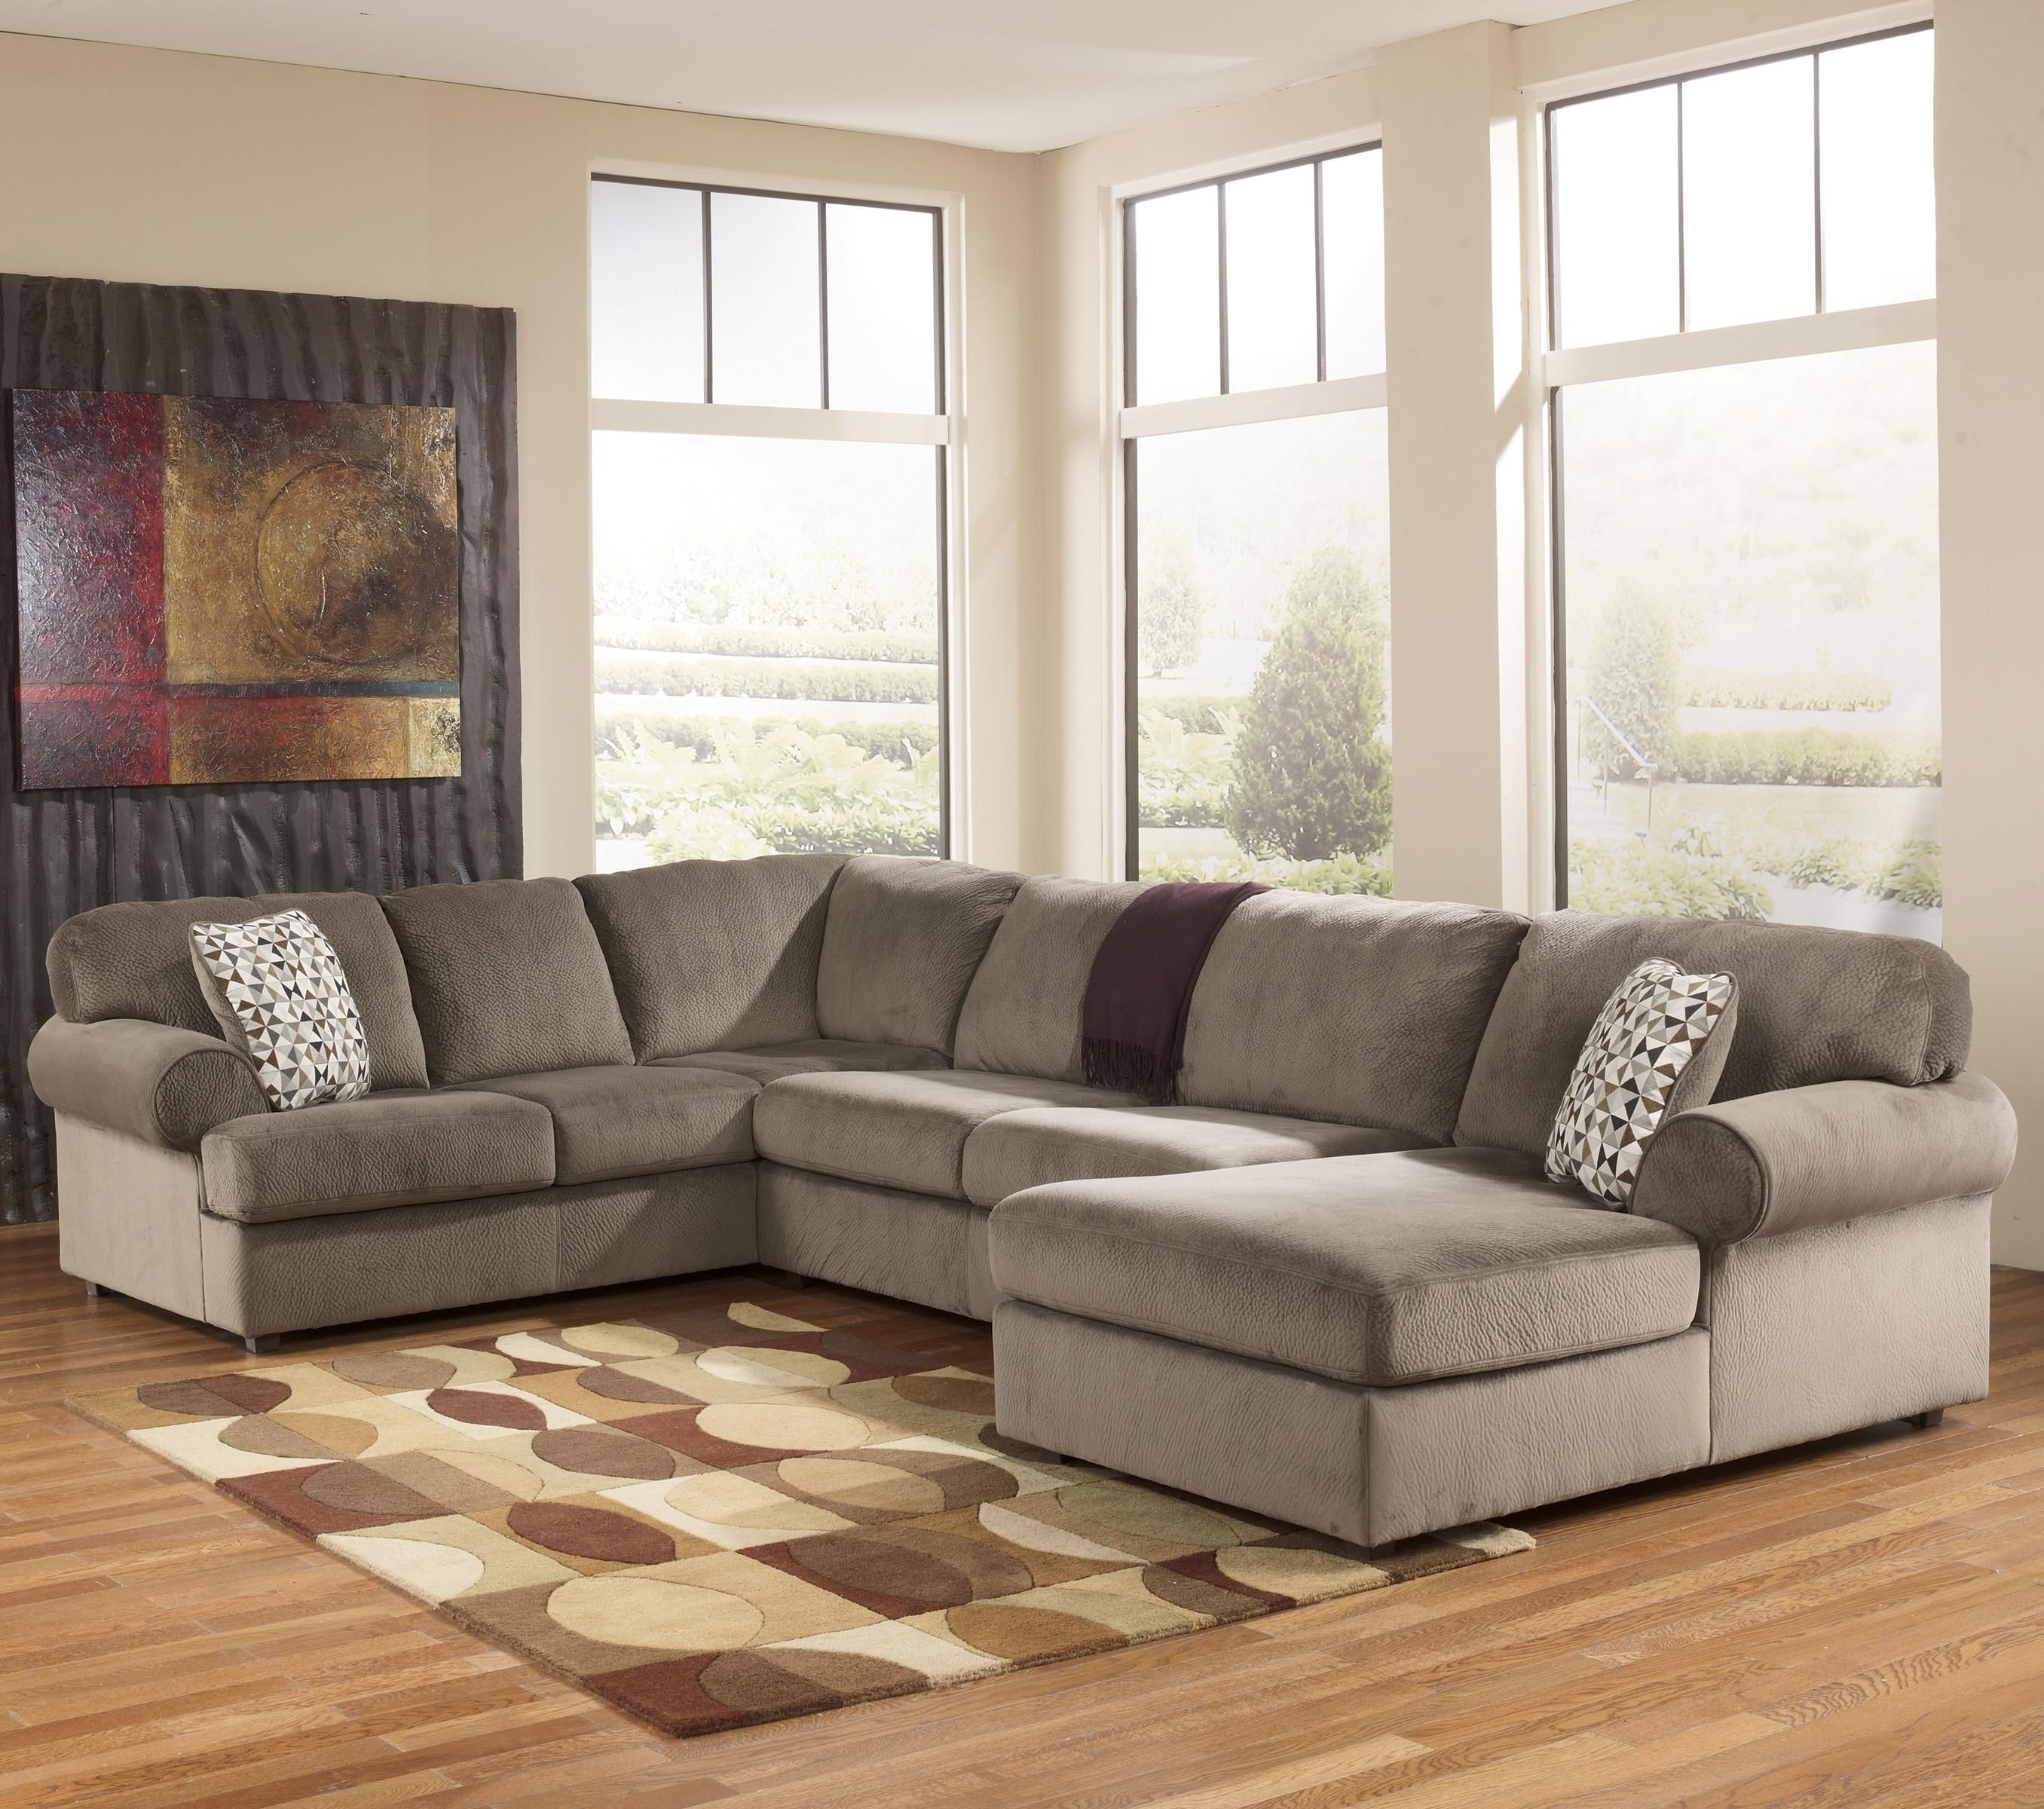 Jessa Place - Dune Casual Sectional Sofa with Right Chaise by ...